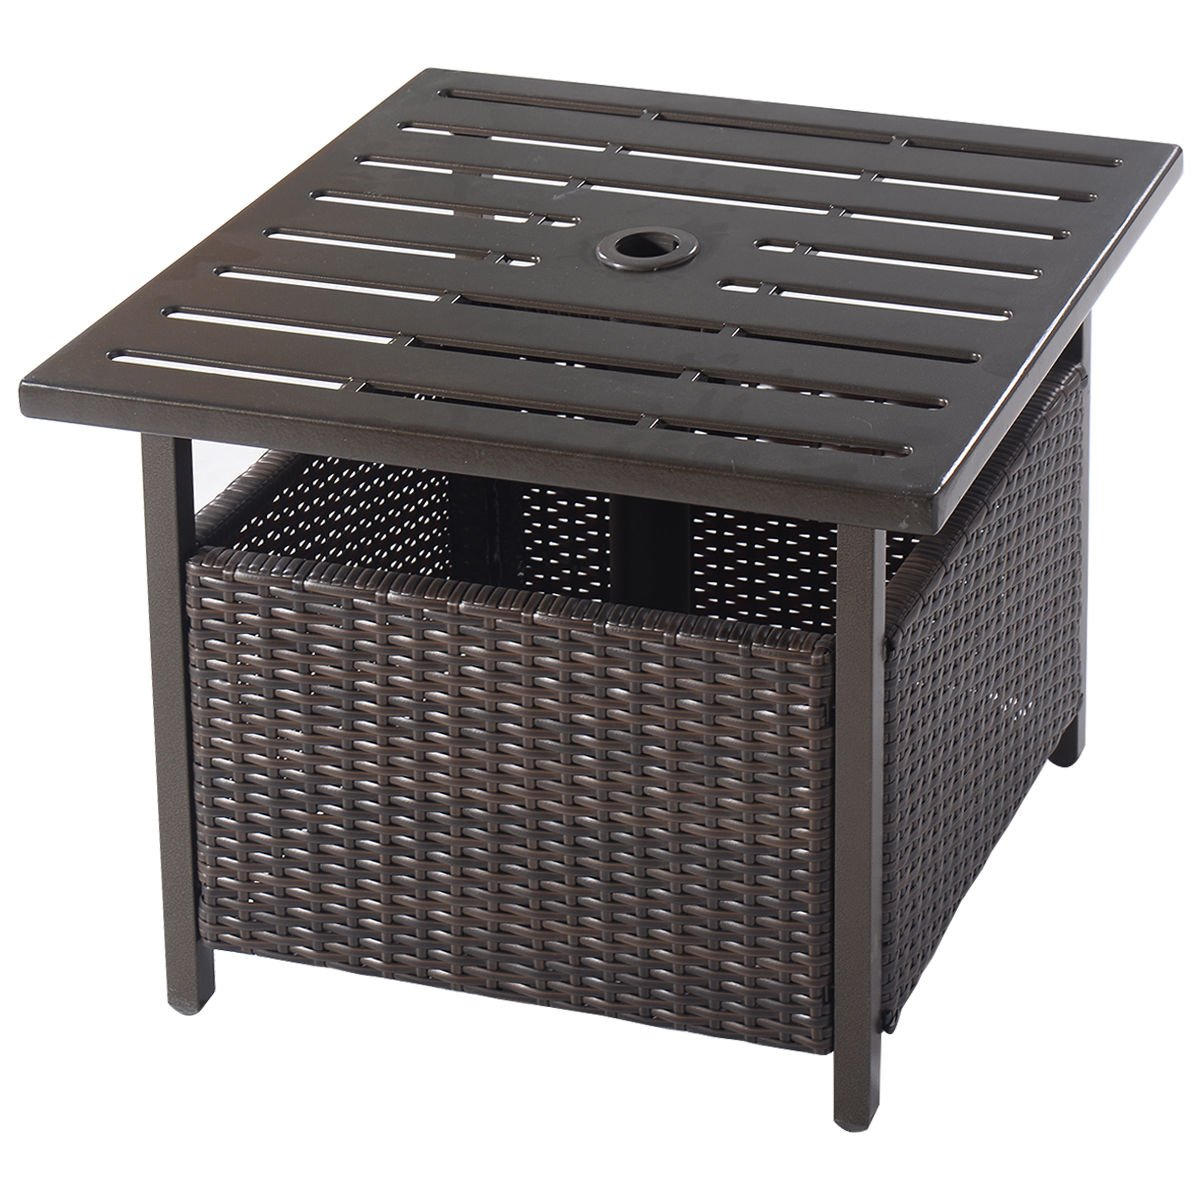 brown rattan wicker steel side table outdoor furniture umbrella hole deck garden patio pool ashley and chairs small accent lights antique two tier weatherproof west elm espresso